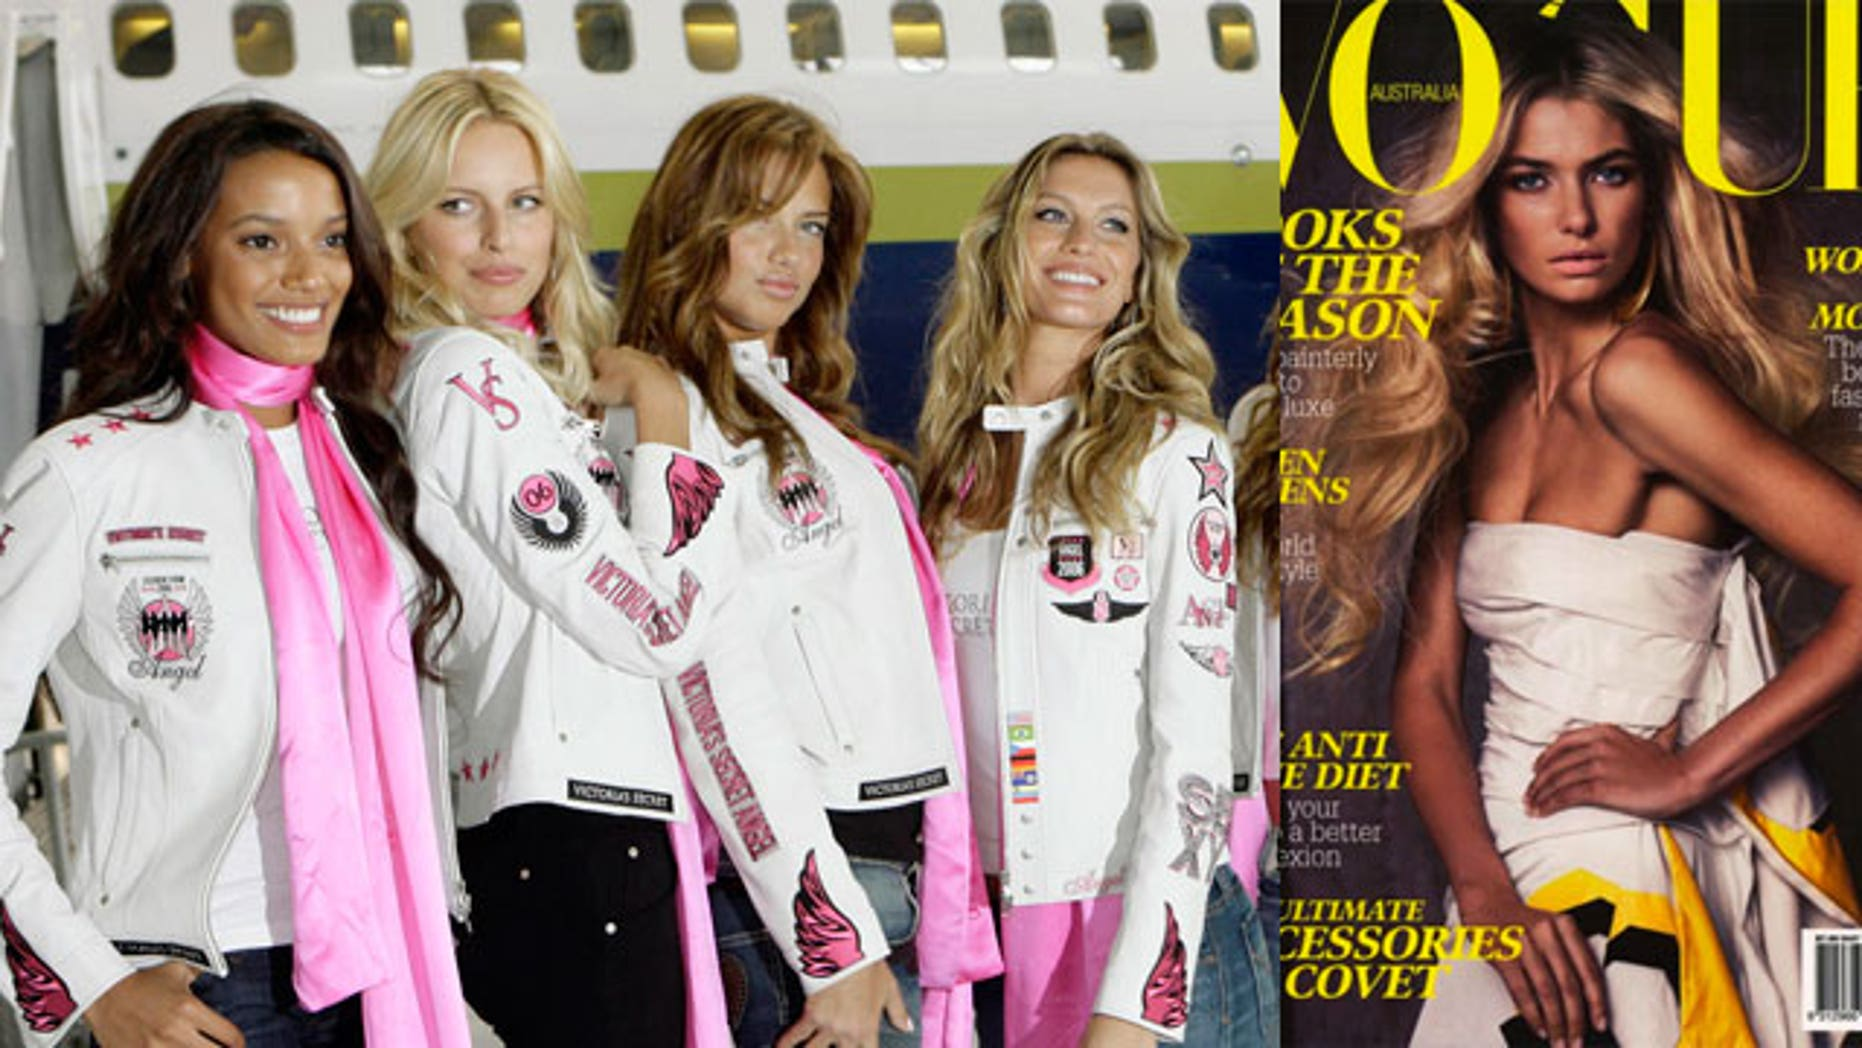 Ordinary guys don't have a chance with the Victoria's Secret angels, says model Jess Hart (far right).